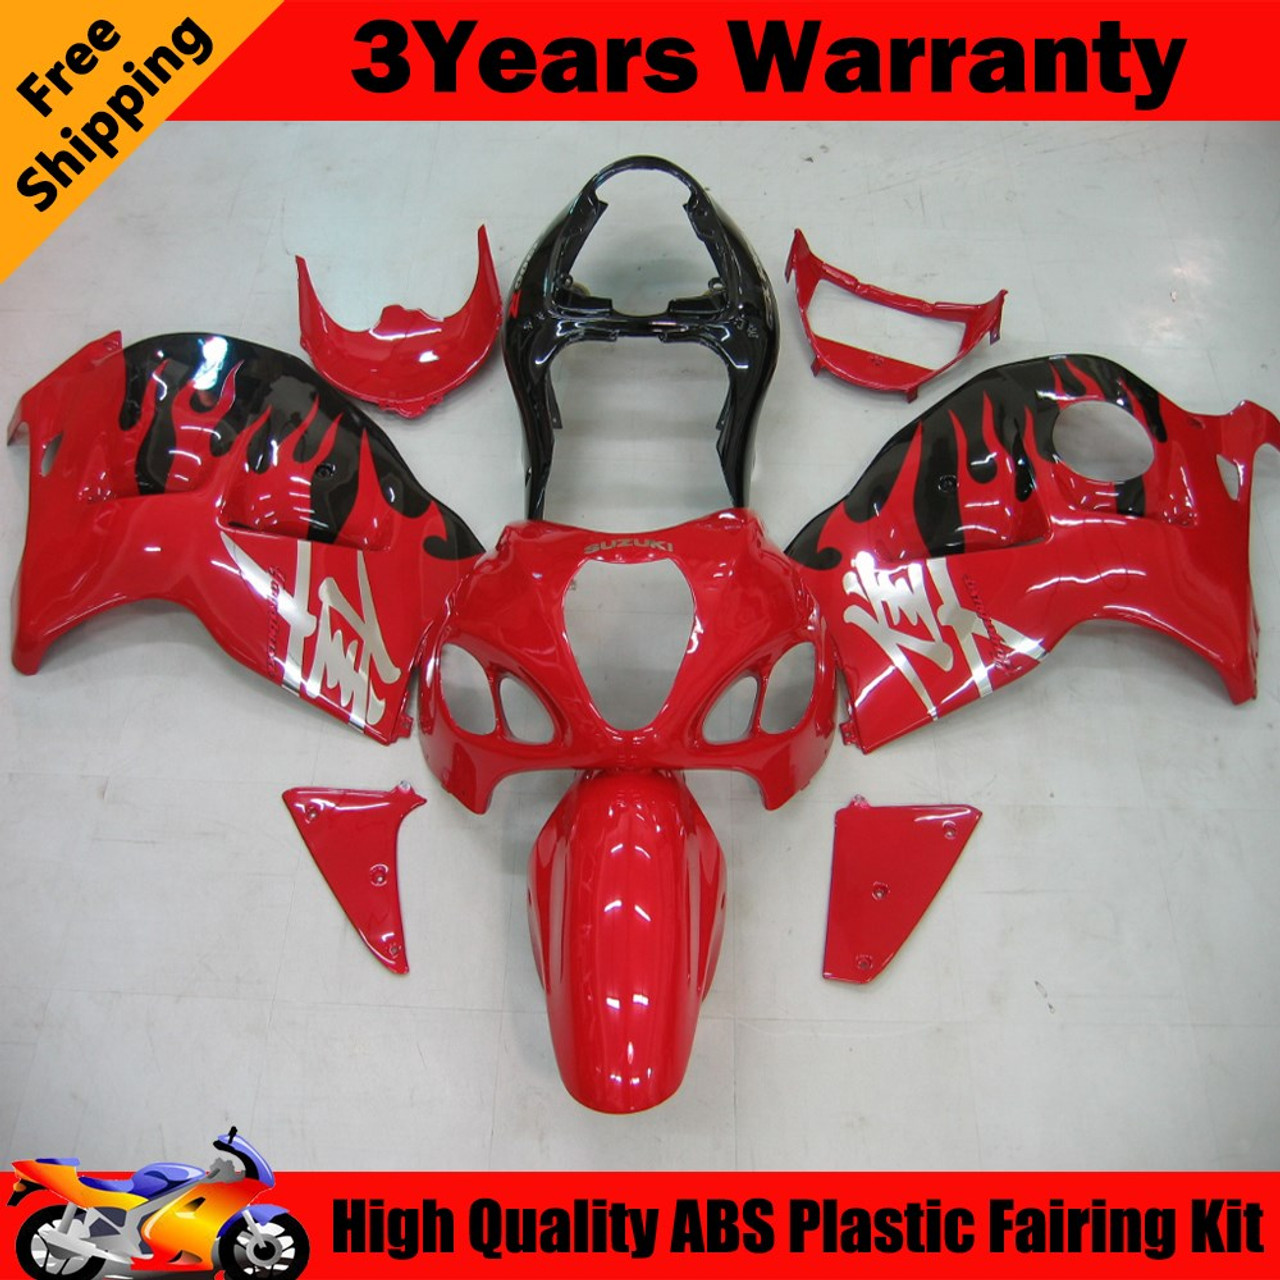 Fairings Suzuki GSX1300 Hayabusa Red & Black Hayabusa Racing  (1999-2007)